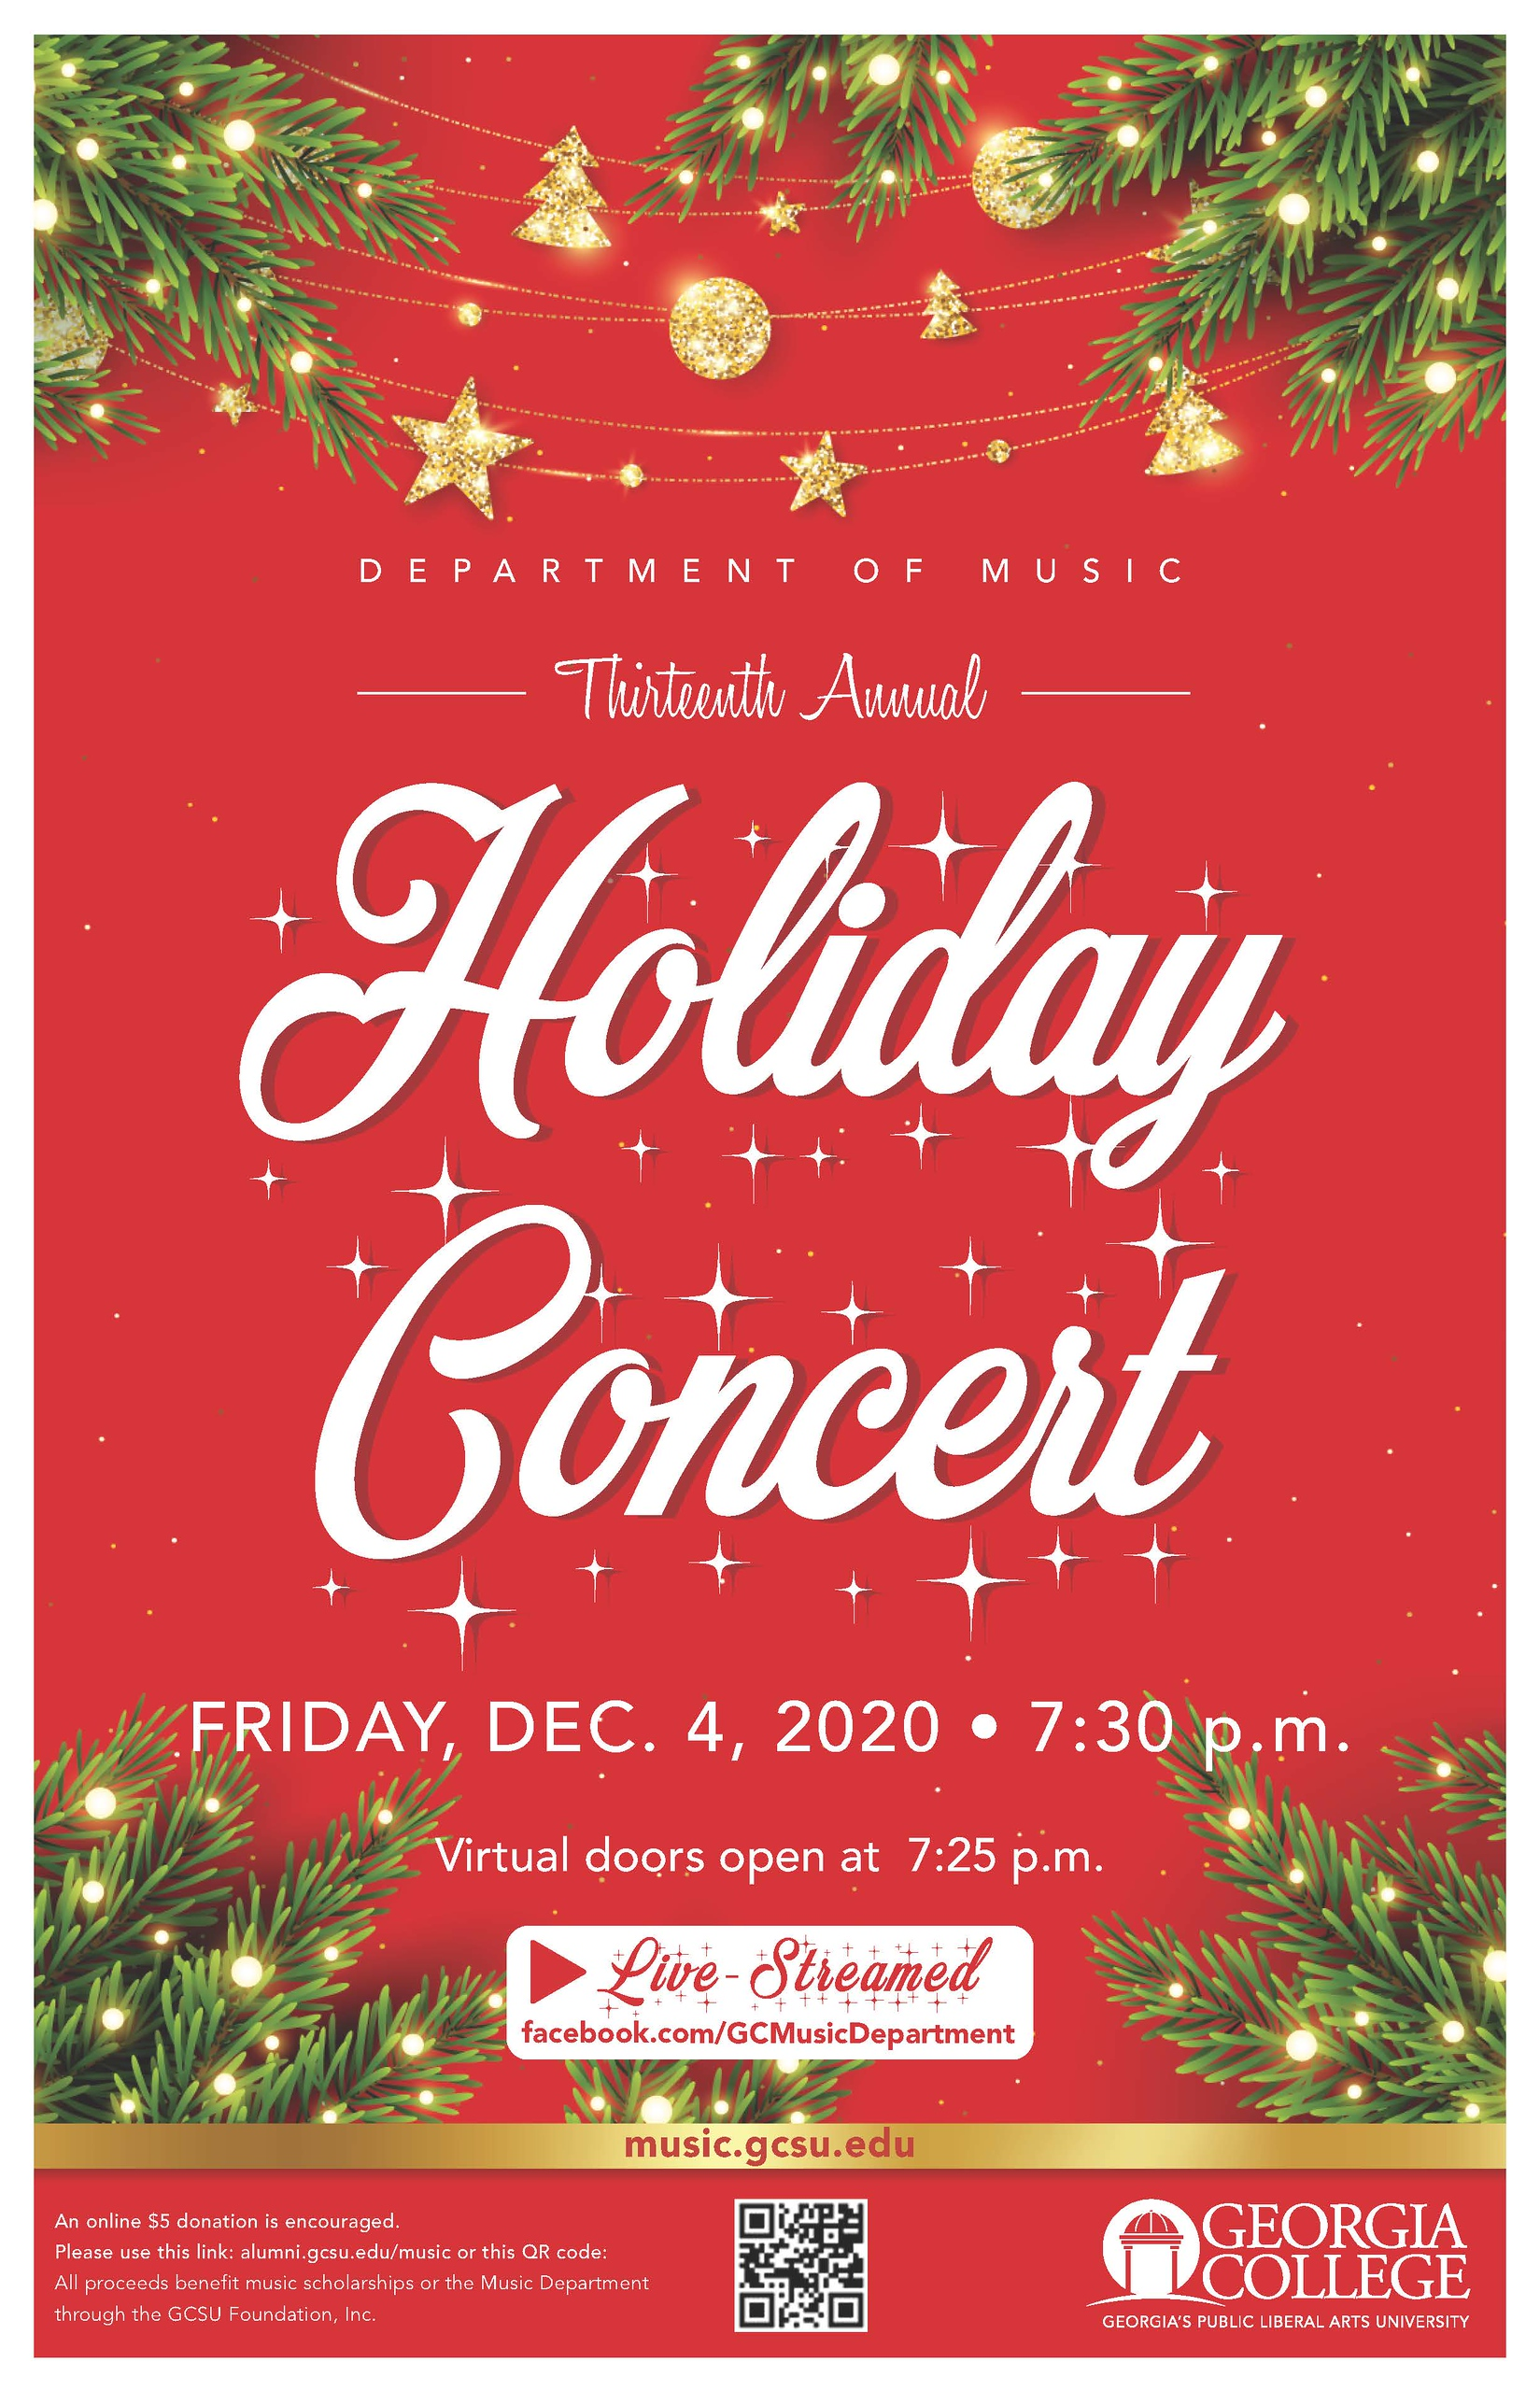 Please join us Friday, Dec. 4, 7:30 pm on facebook.com/GCMusicDepartment.